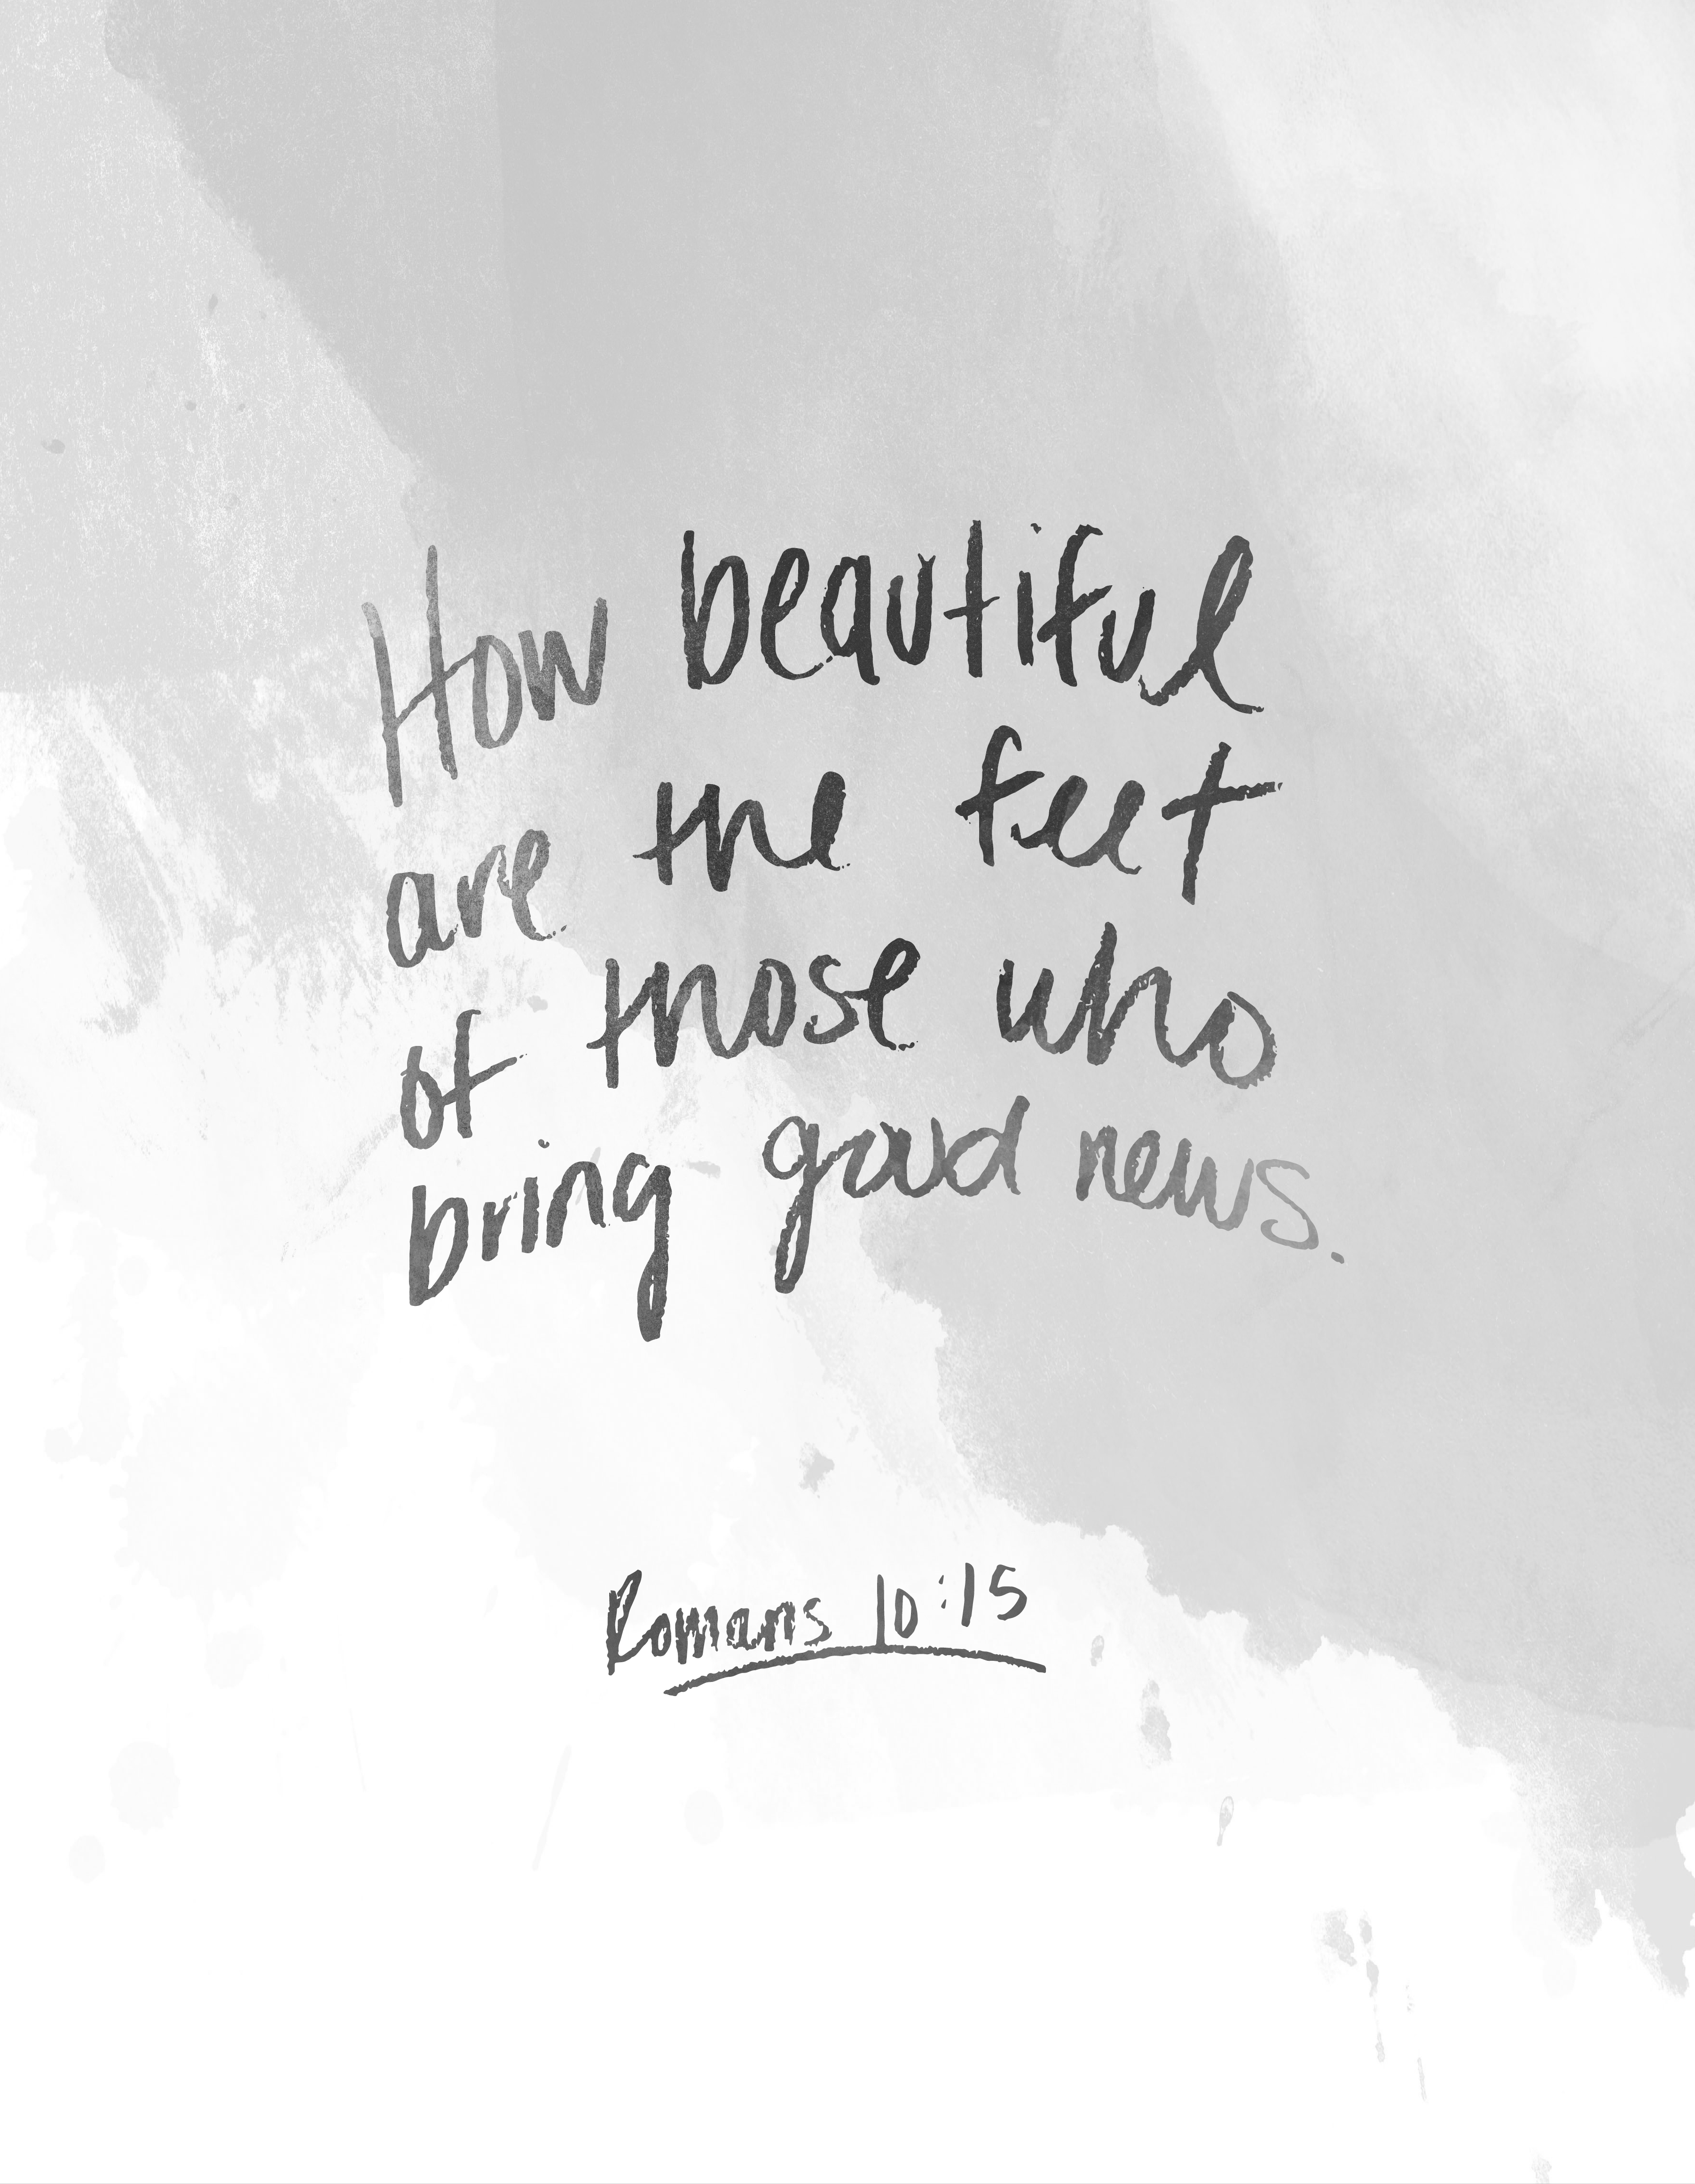 4dbecab7f0e9f Romans 10:15 - Abigail Wright Design | Inspirational | Quotes about ...